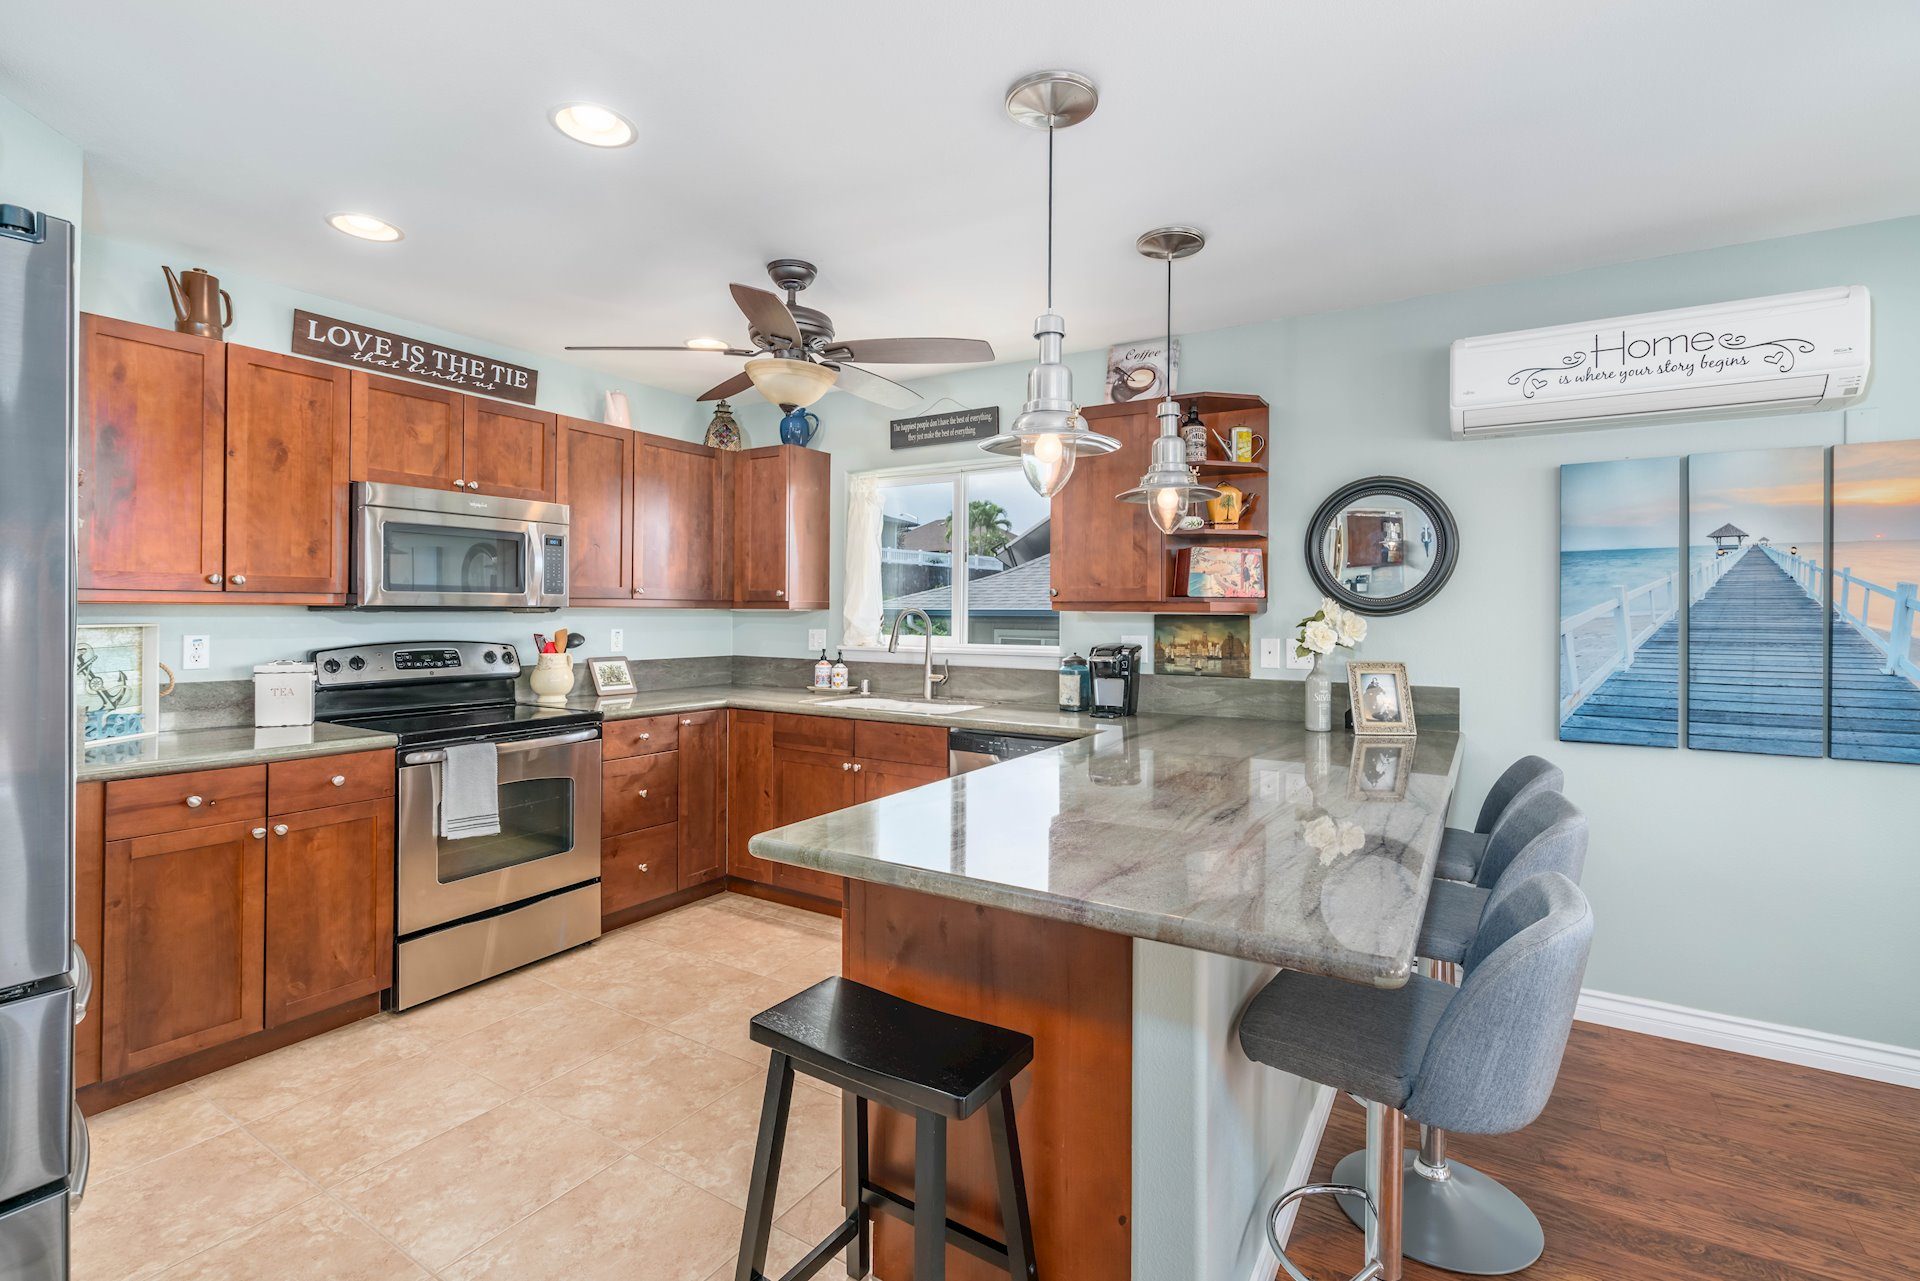 kitchen with some upgraded appliances and granite countertops